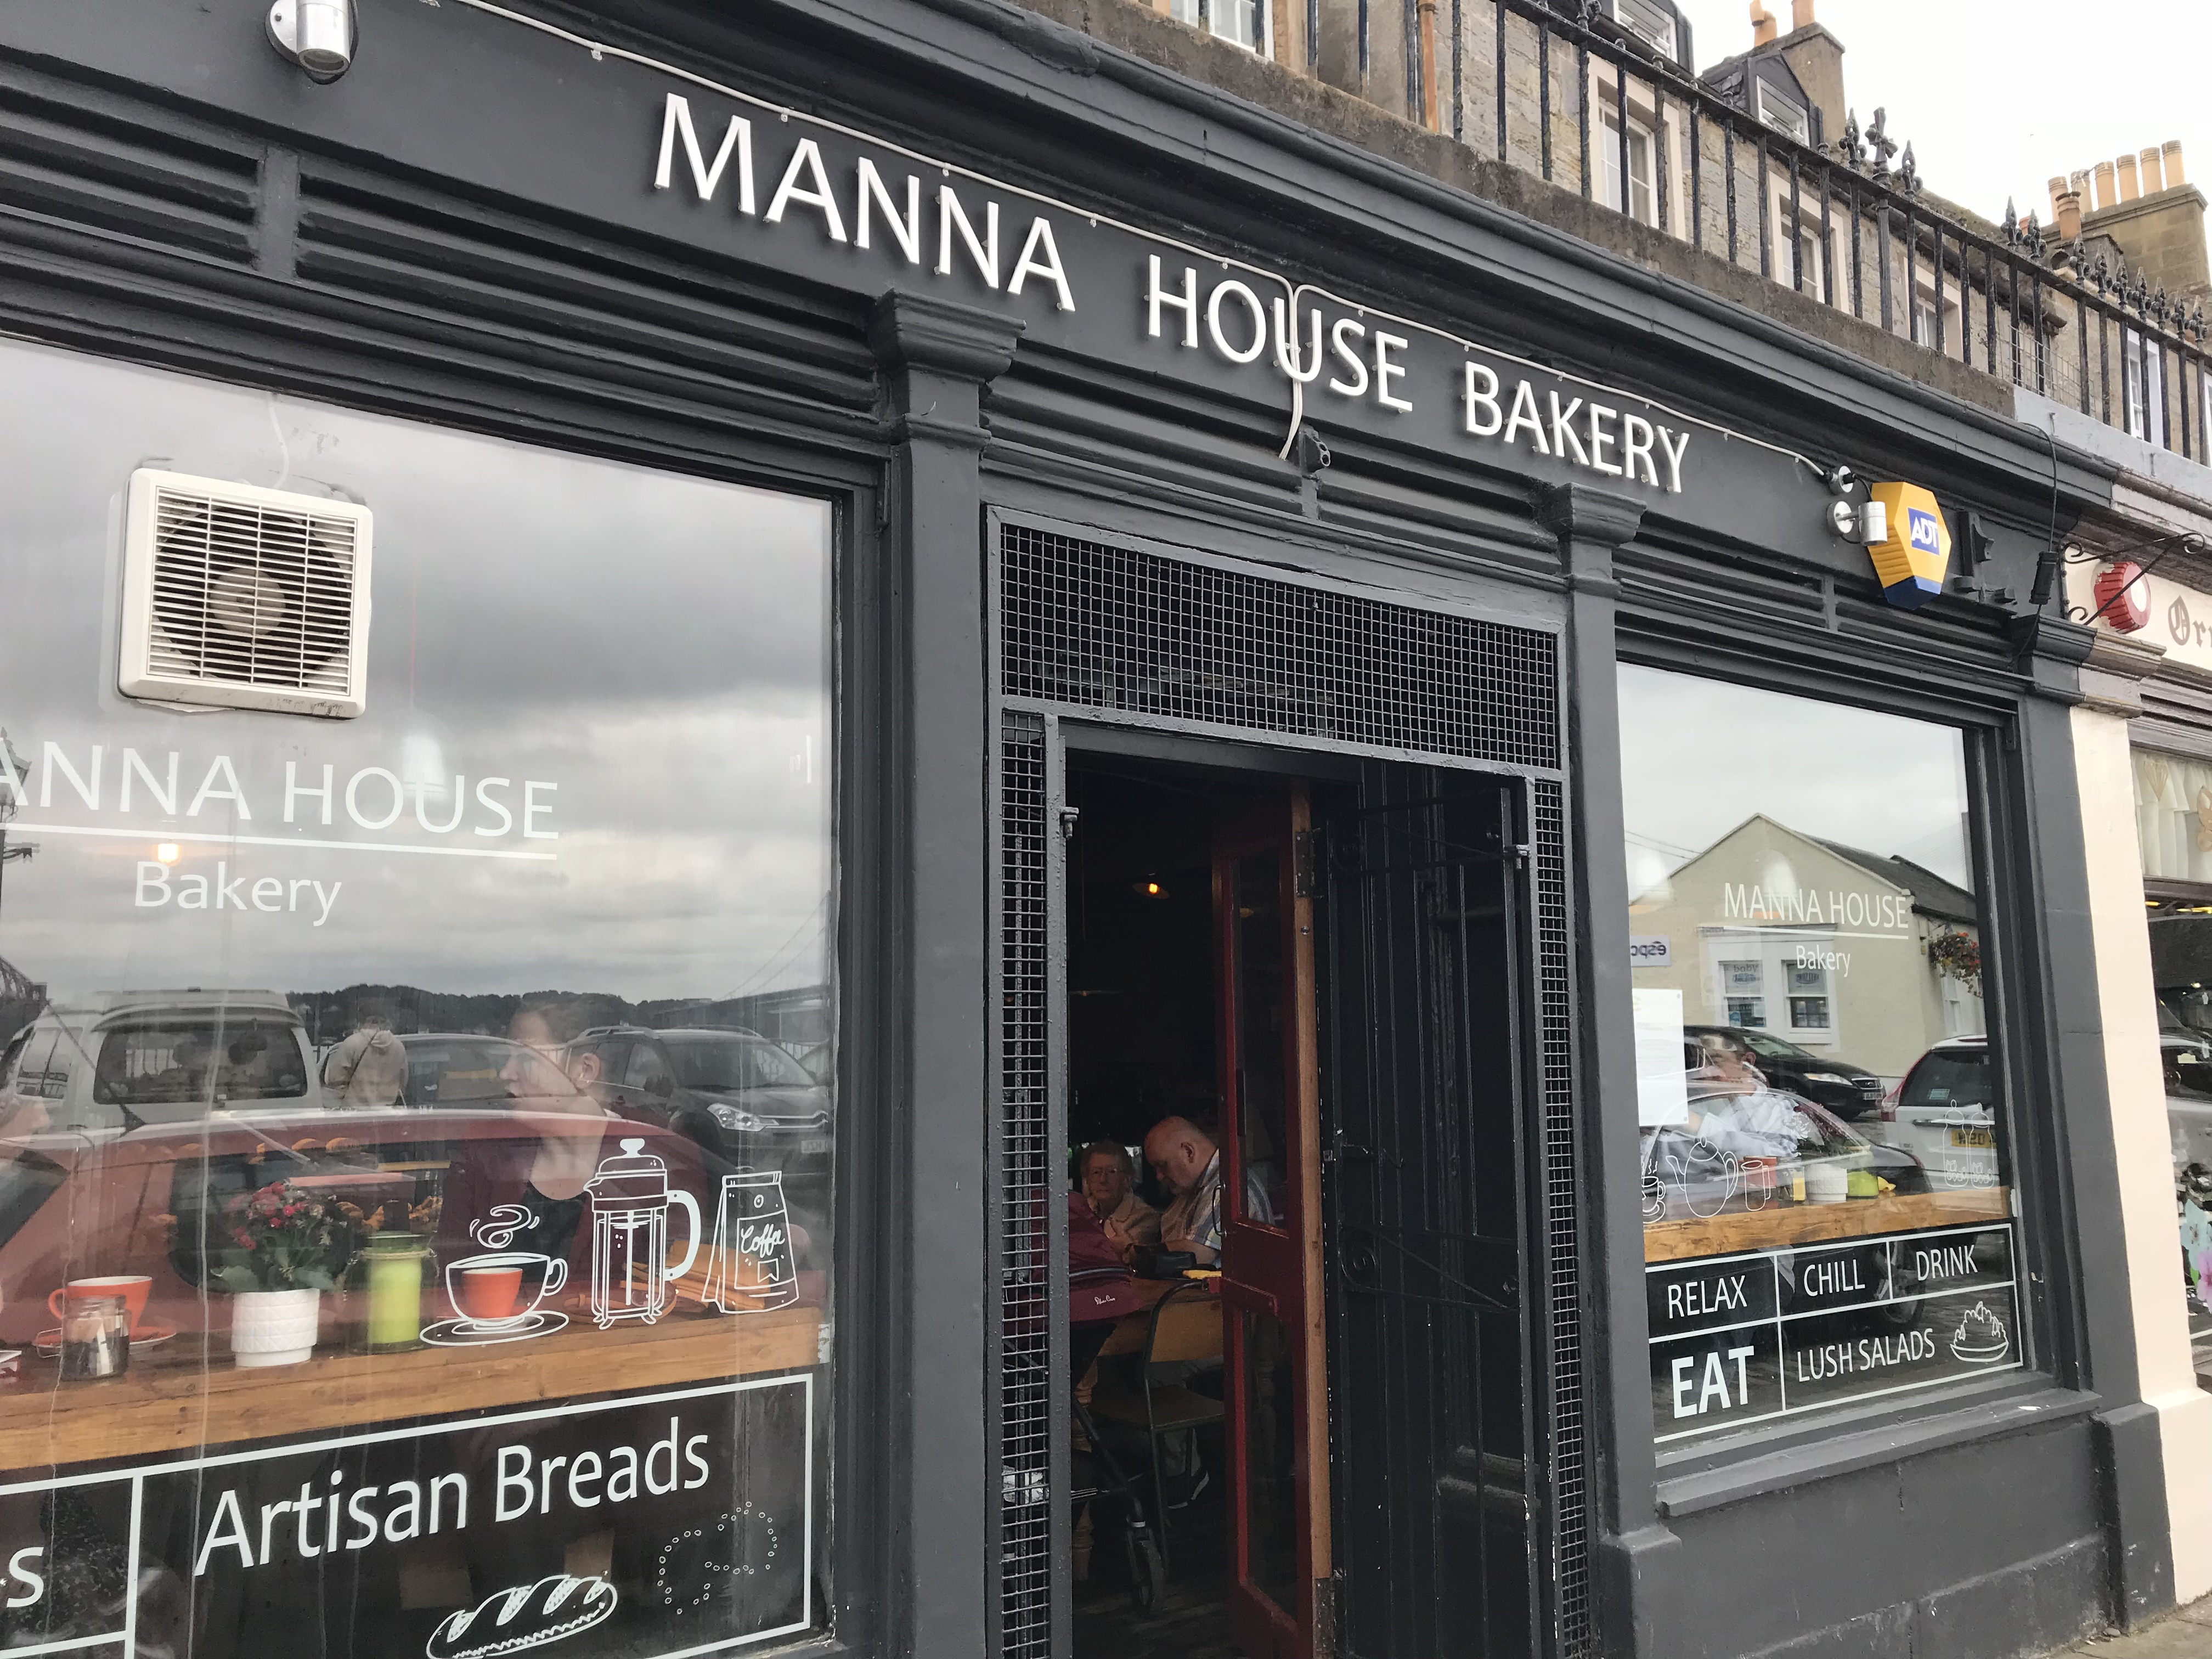 The Manna House Bakery in South Queensferry